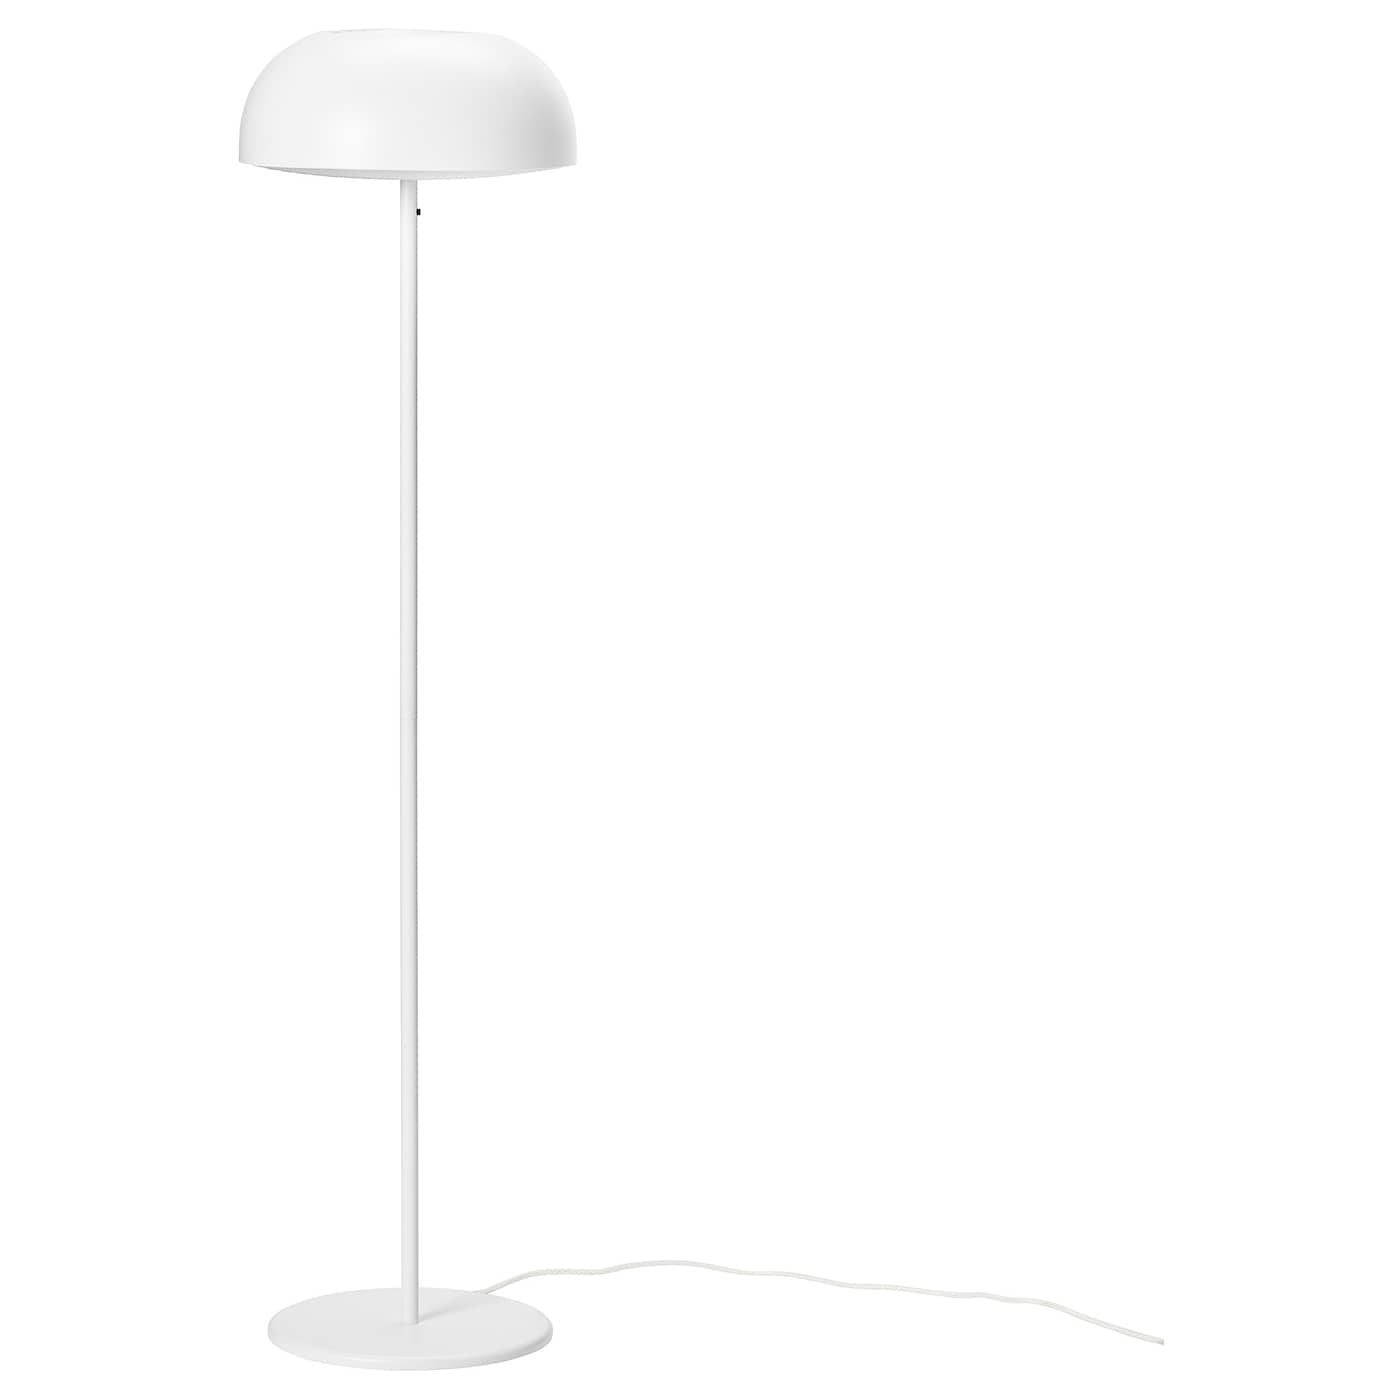 Nymane Floor Lamp With Led Bulb White Ikea In 2020 Floor Lamp Ikea Floor Lamp Led Bulb